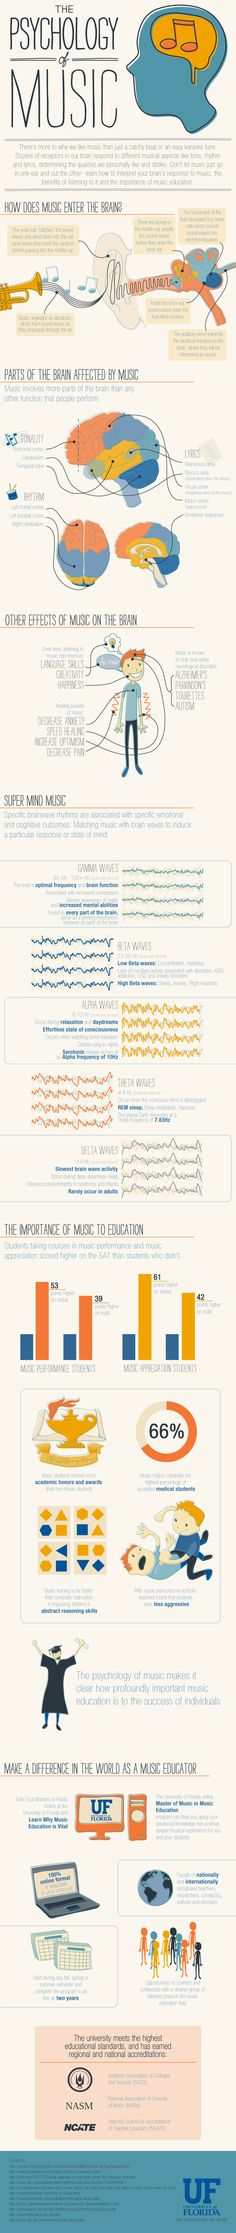 Great infopic of how music affects the brain! (music majors comprise the highest percentage of students accepted into medical school 66%.)